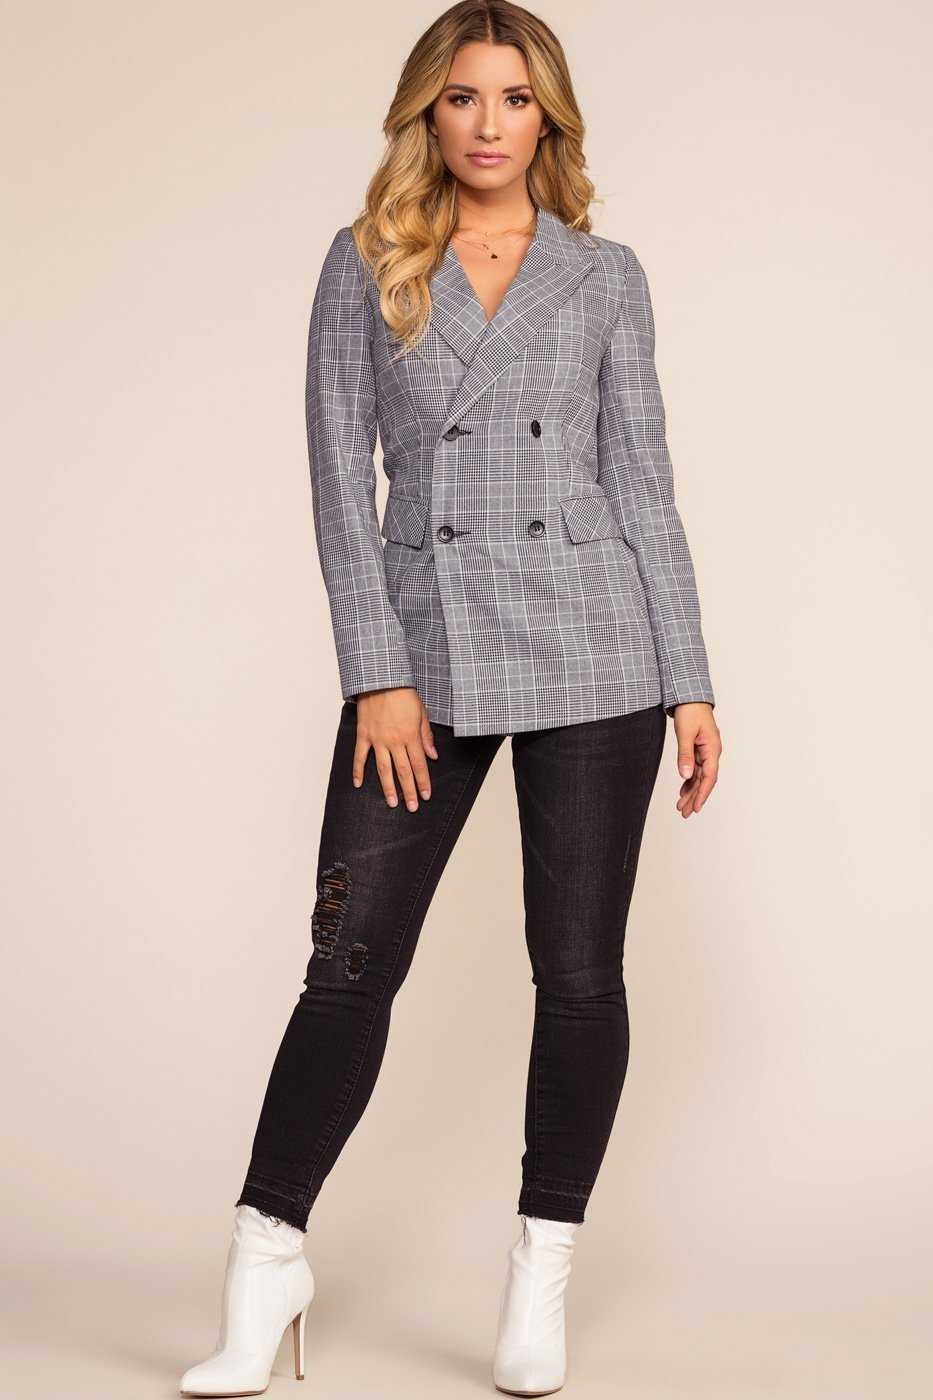 Jackets - Gianna Tartan Plaid Blazer